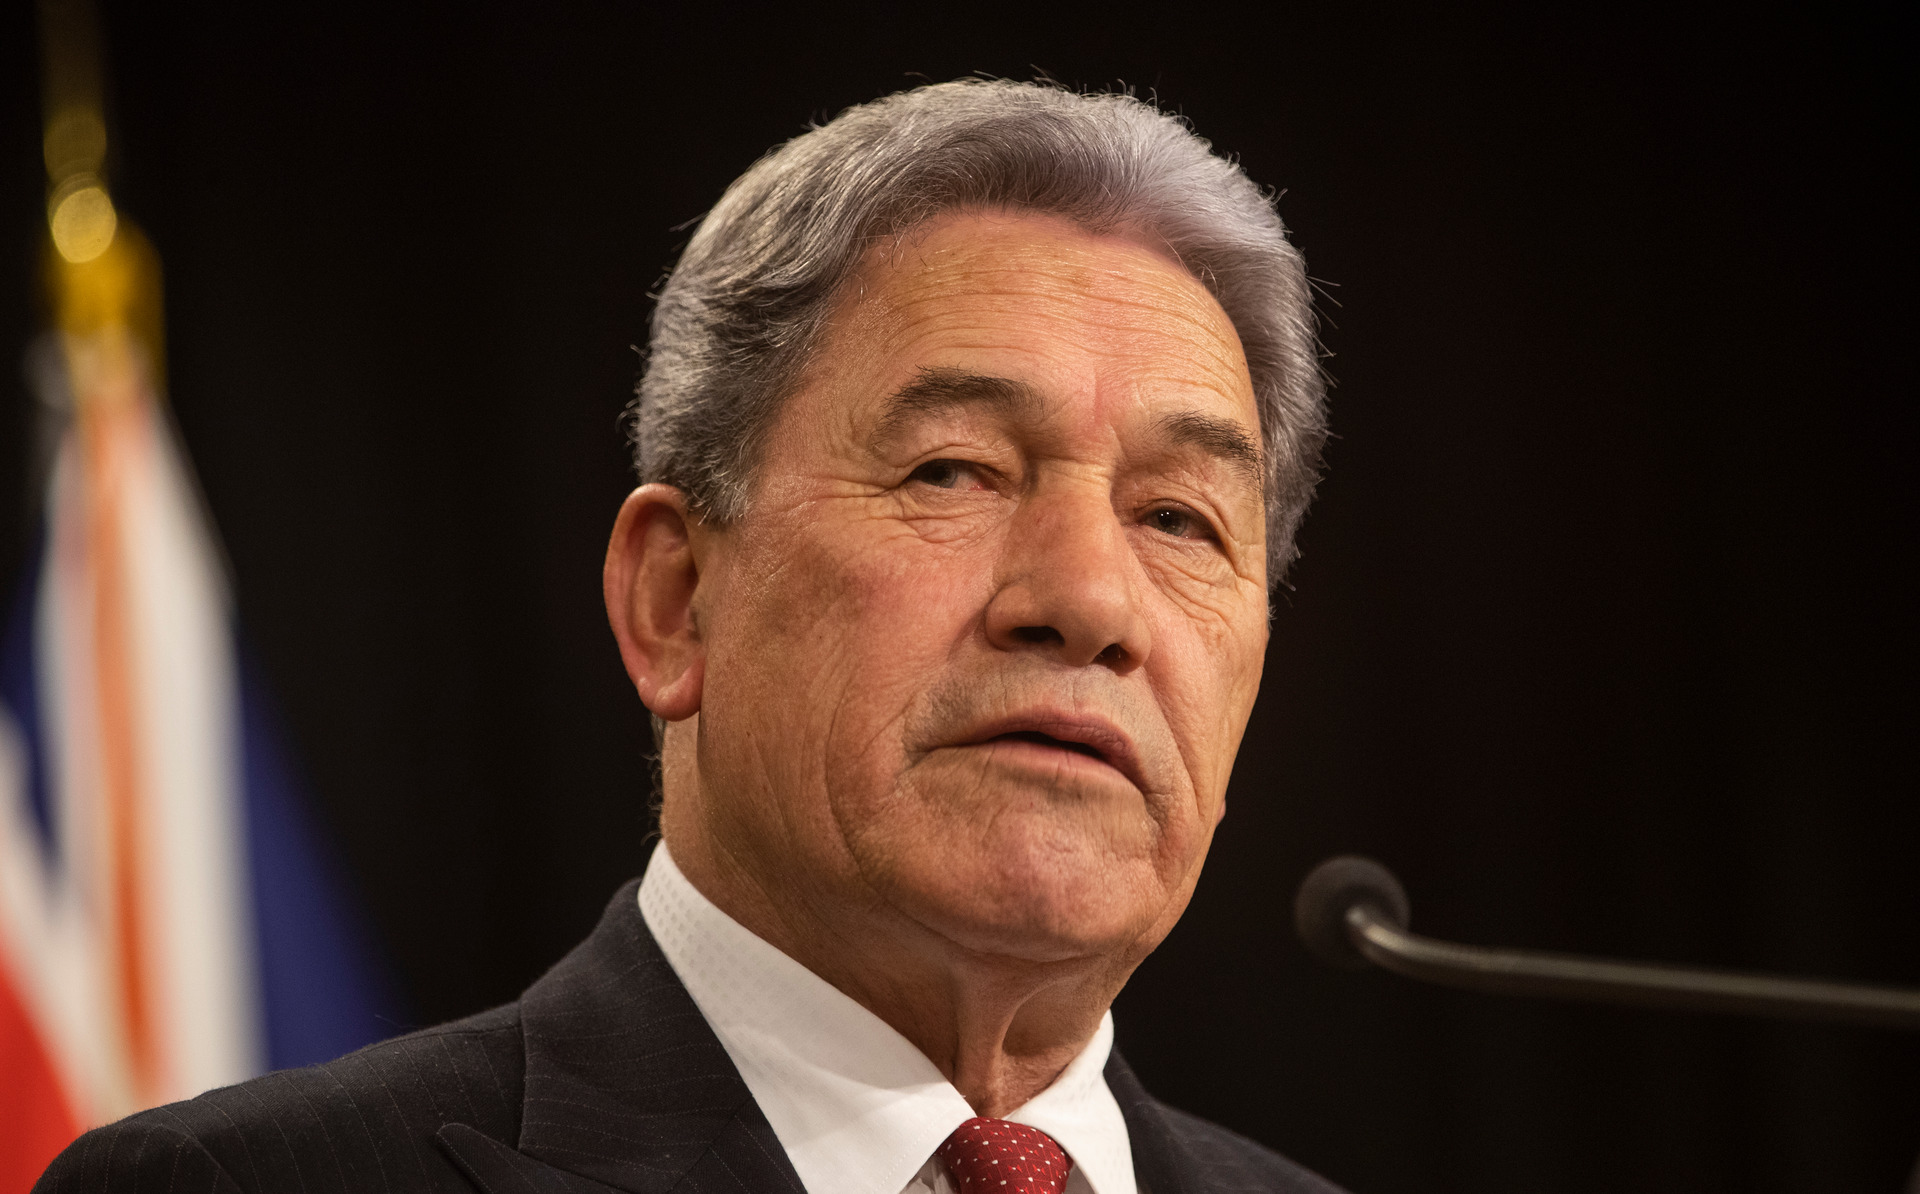 NZ First Leader Winston Peters: National's plan to raise the retirement age bad news